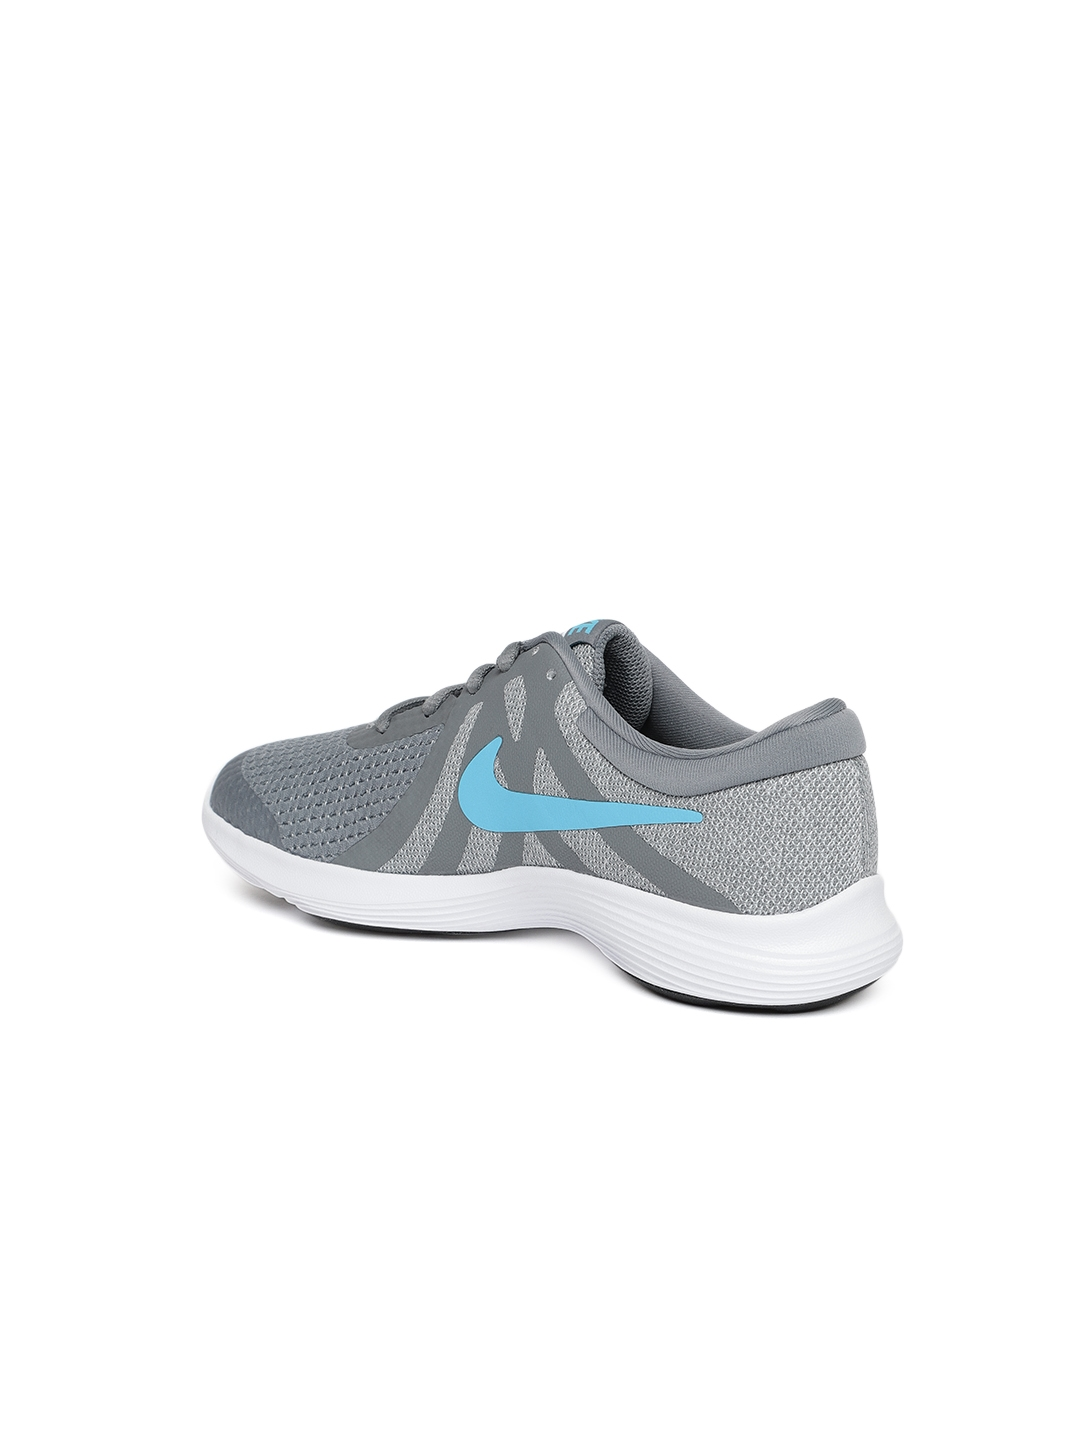 reputable site 02b34 8650e Nike Boys Grey REVOLUTION 4 Running Shoes